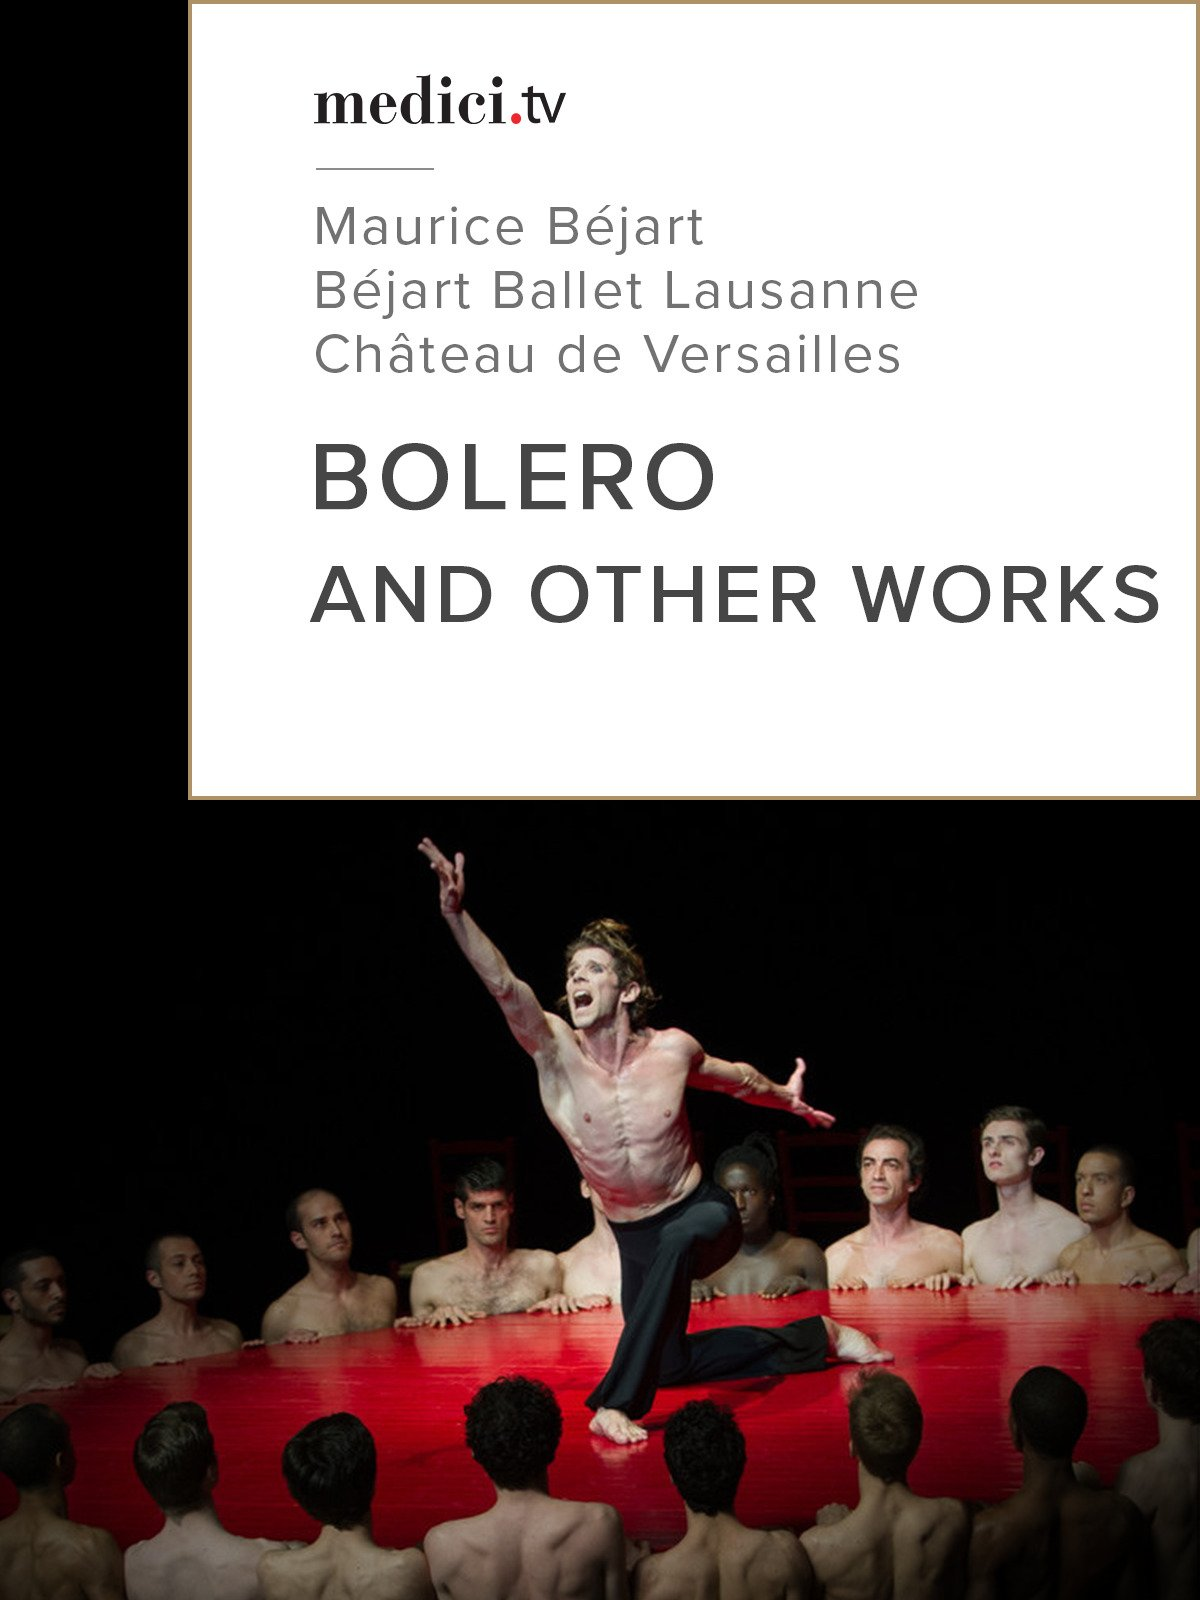 Bolero and other works, Maurice Béjart